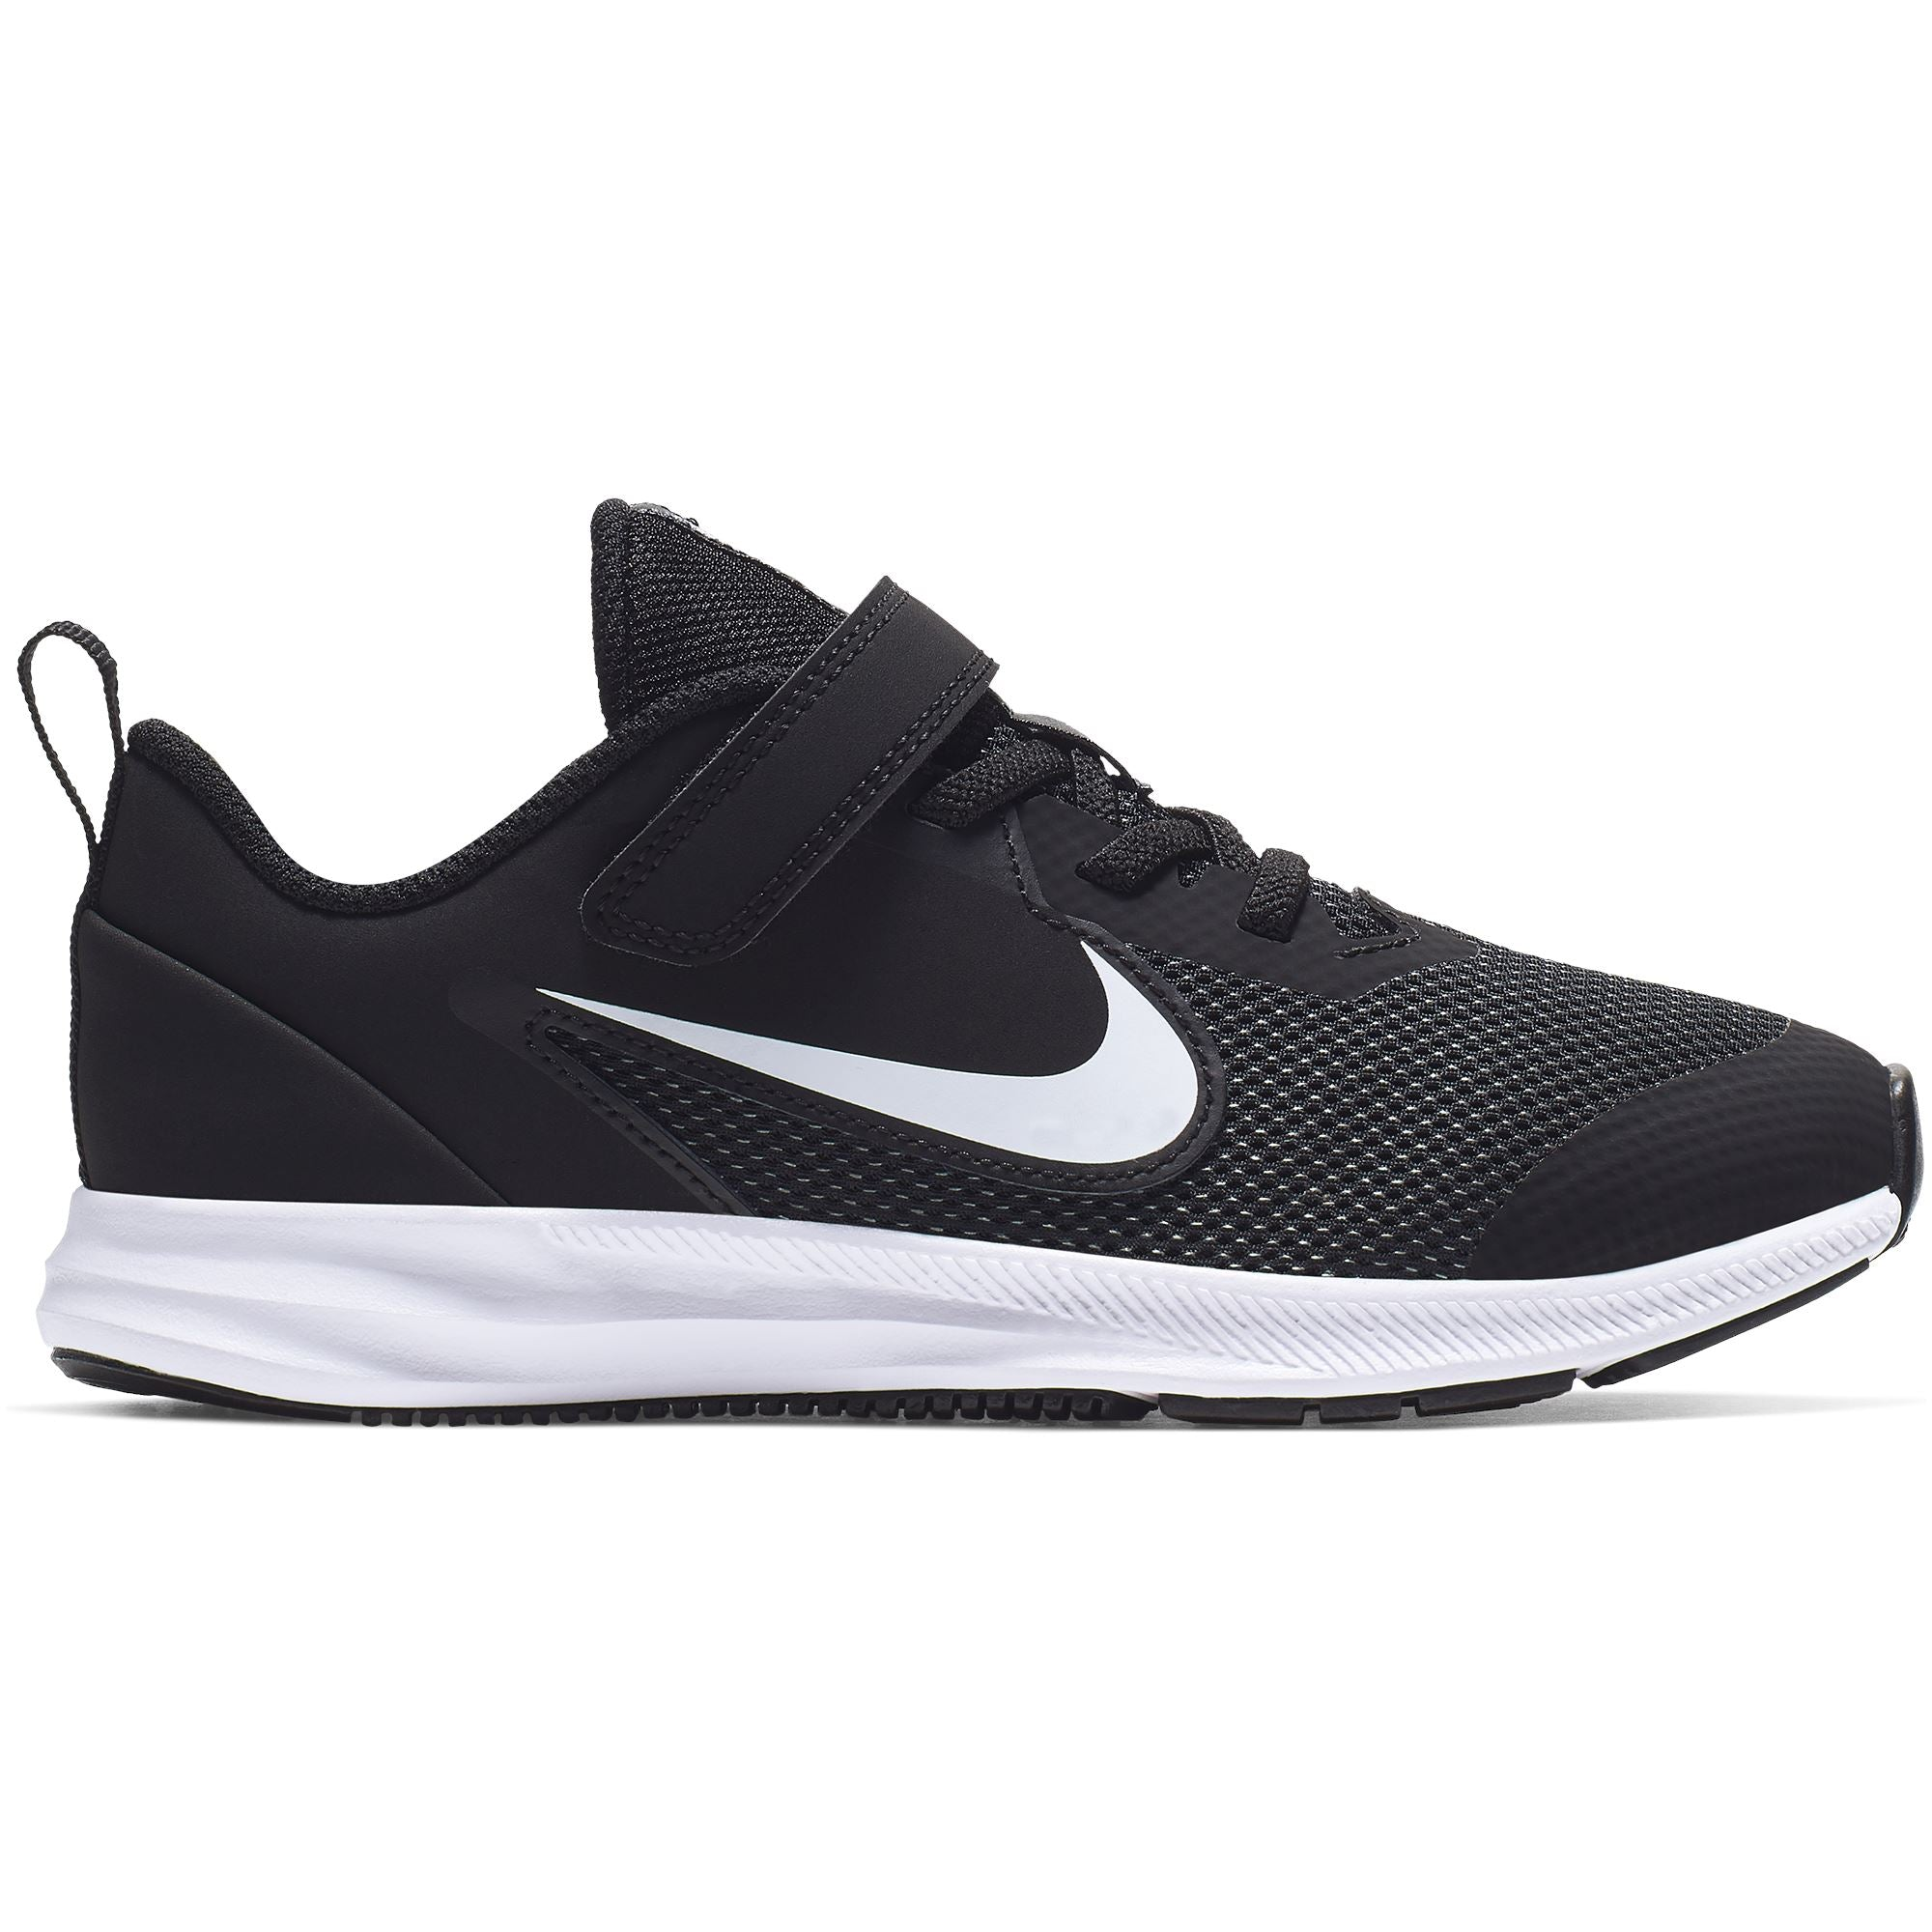 Nike Little Kids Downshifter 9 BlackWhite Anthracite Cool Grey